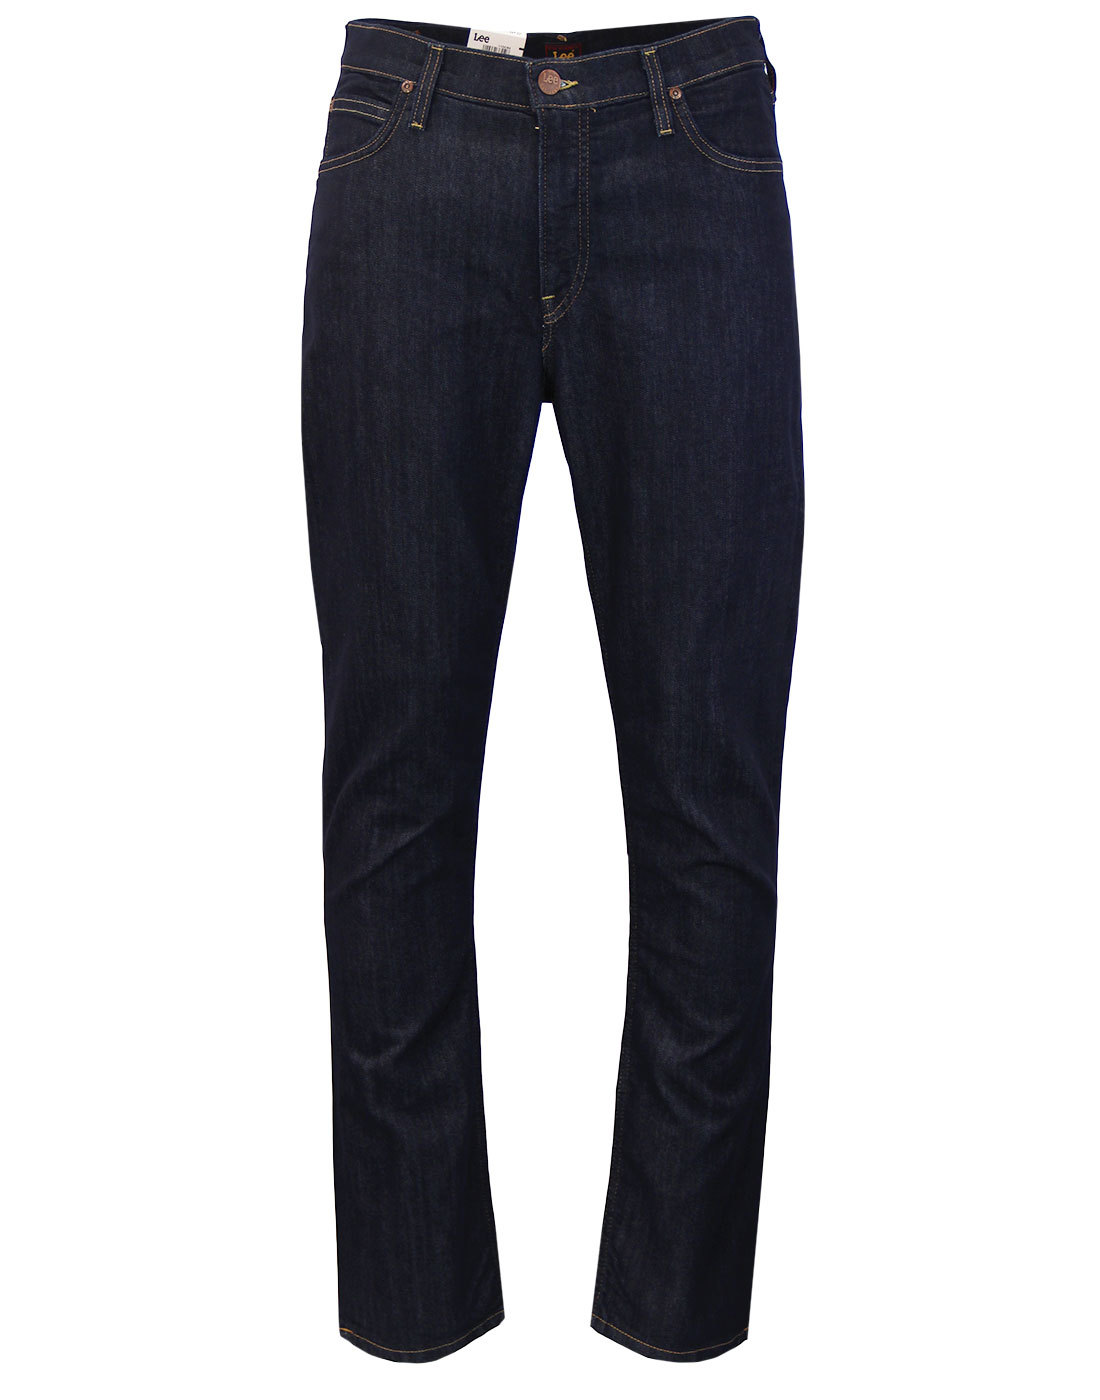 Morton LEE Mod Relaxed Straight Indigo Rinse Jeans